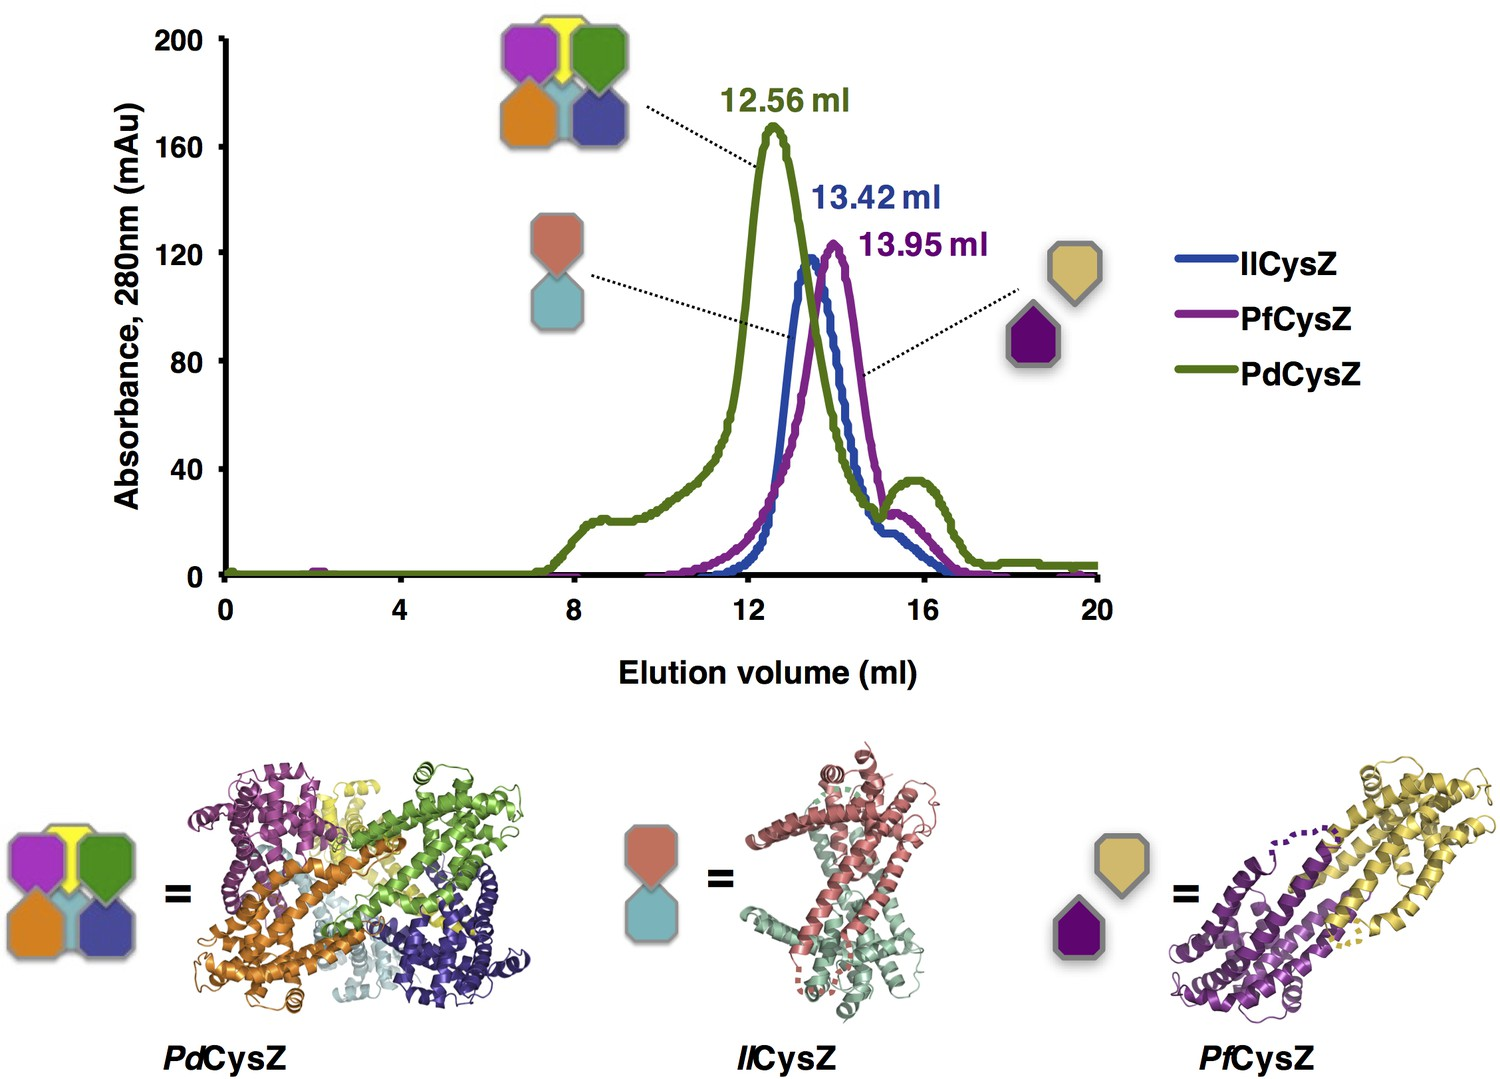 hight resolution of size exclusion chromatography of cysz shows a mono disperse elution profile for each of the three species purified pdcysz pfcyz and ilcysz